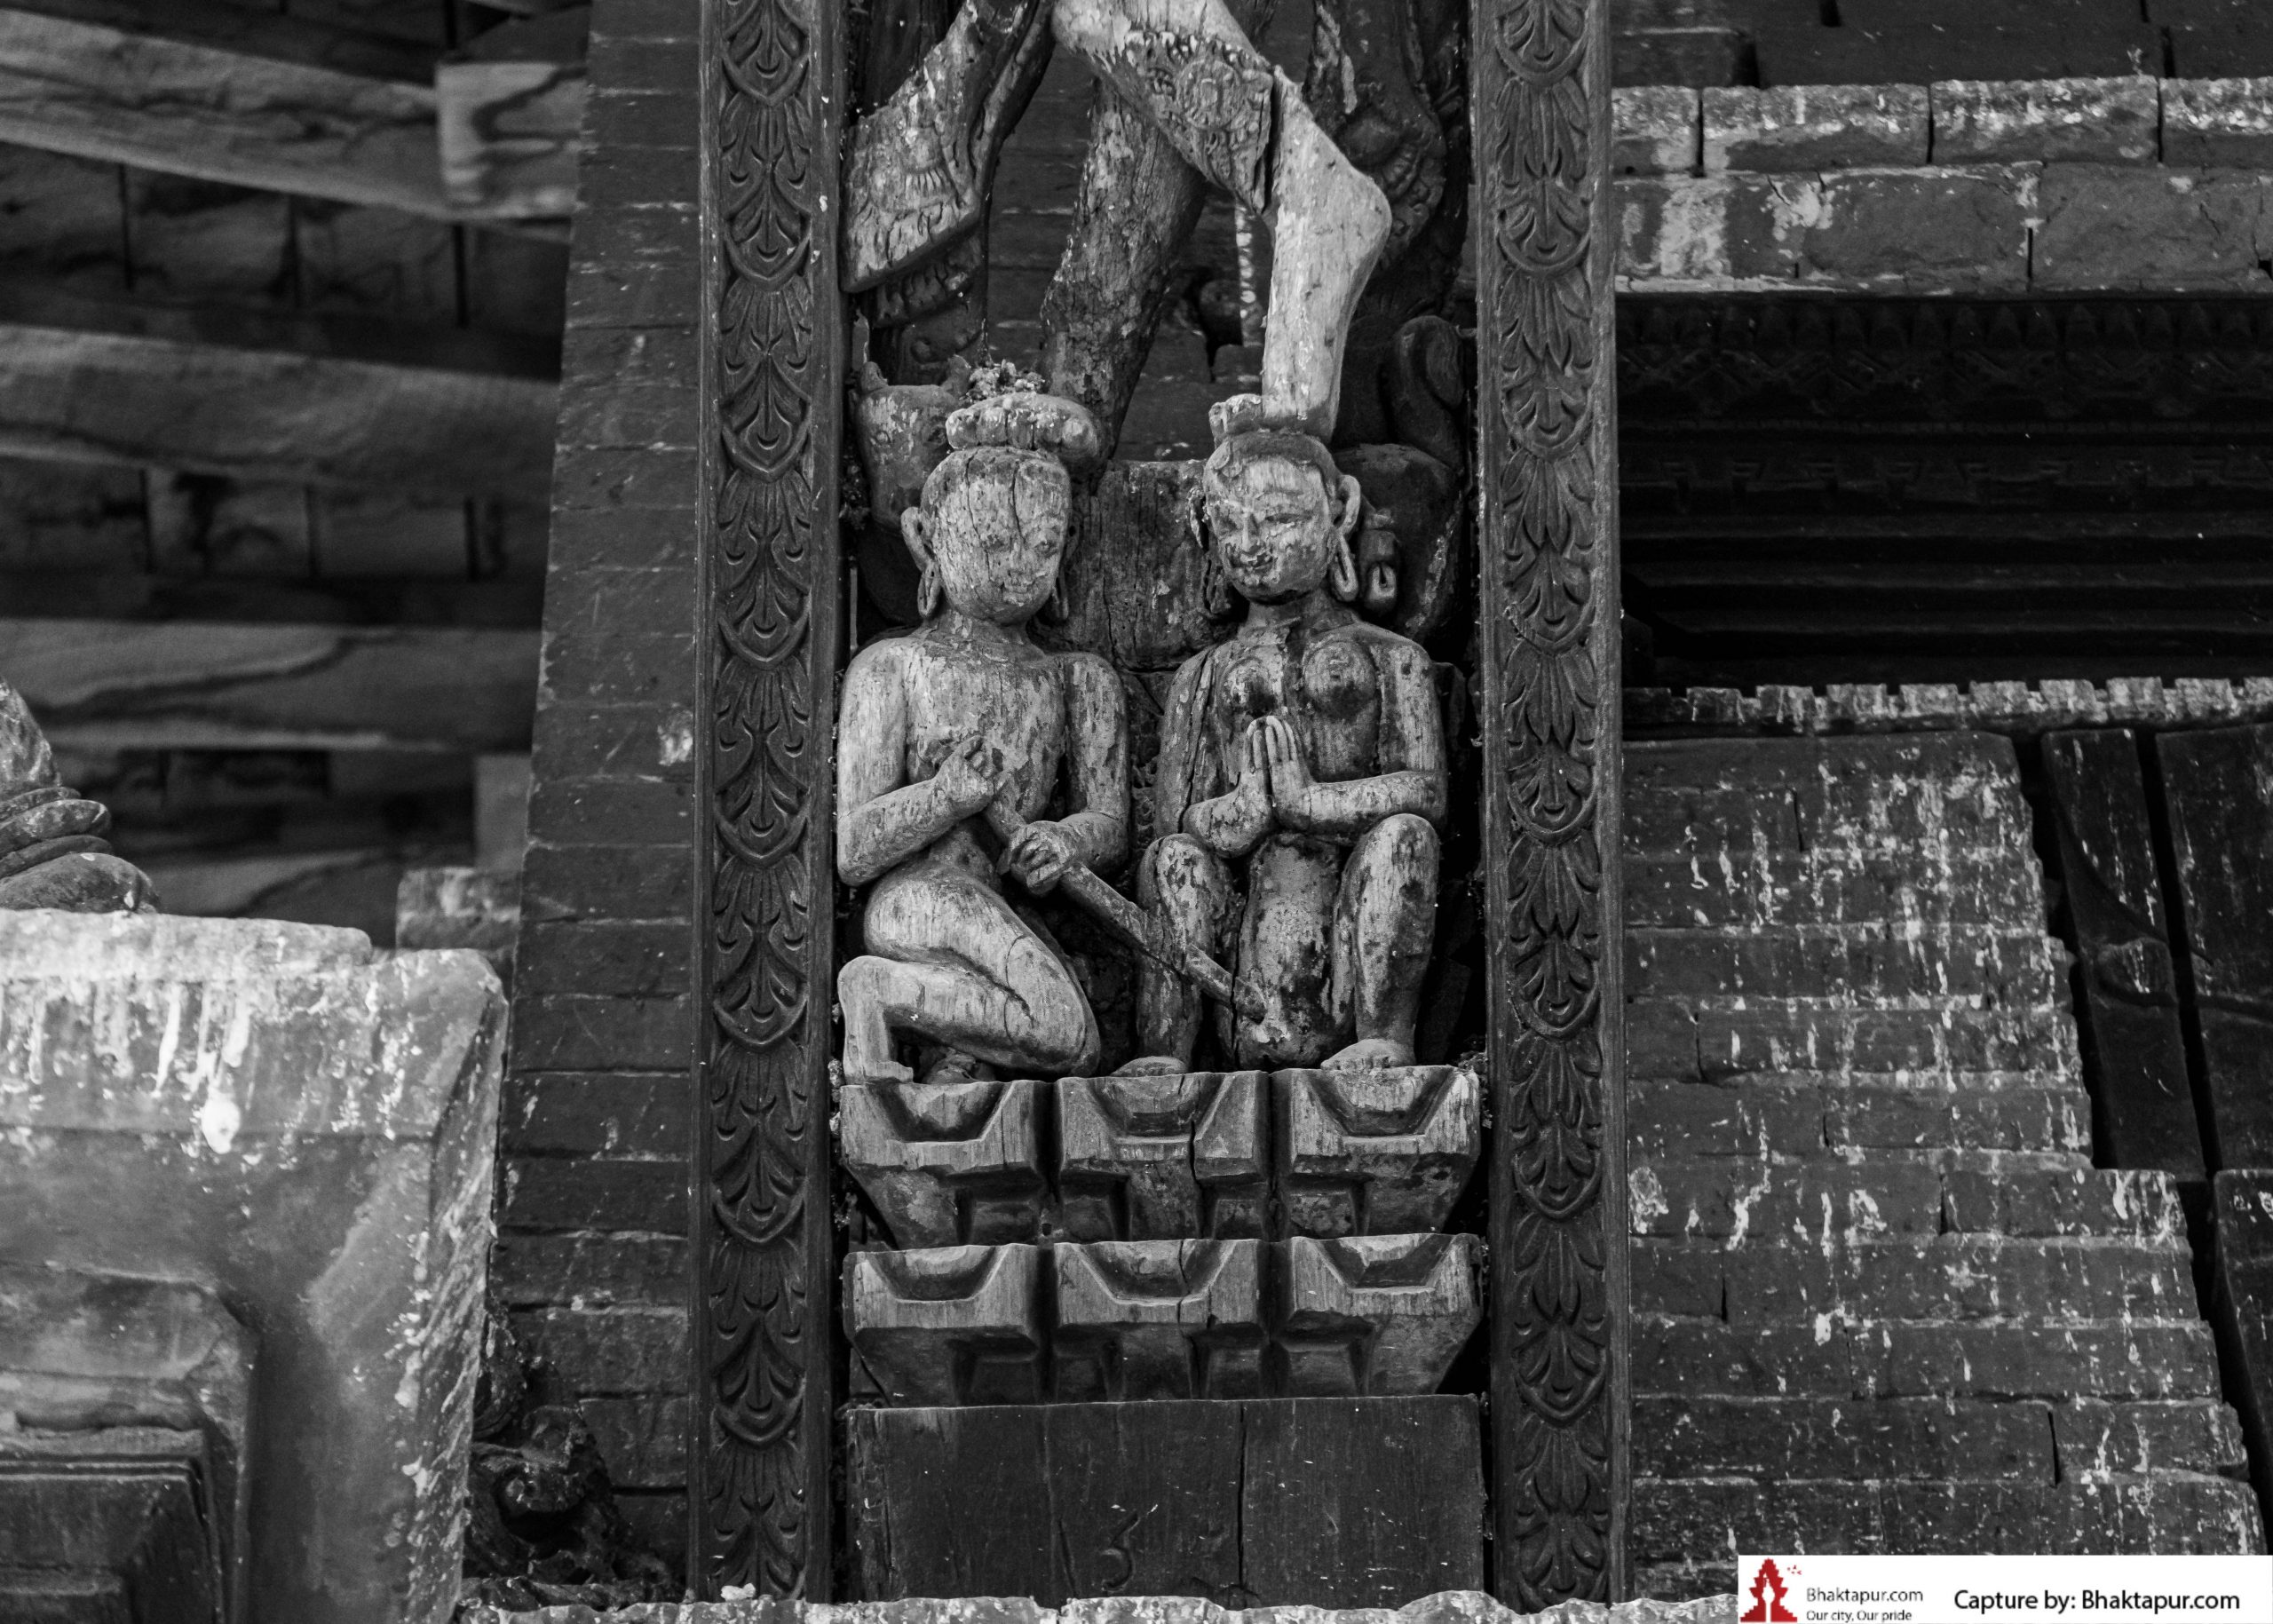 https://www.bhaktapur.com/wp-content/uploads/2021/08/erotic-carving-93-of-137-scaled.jpg